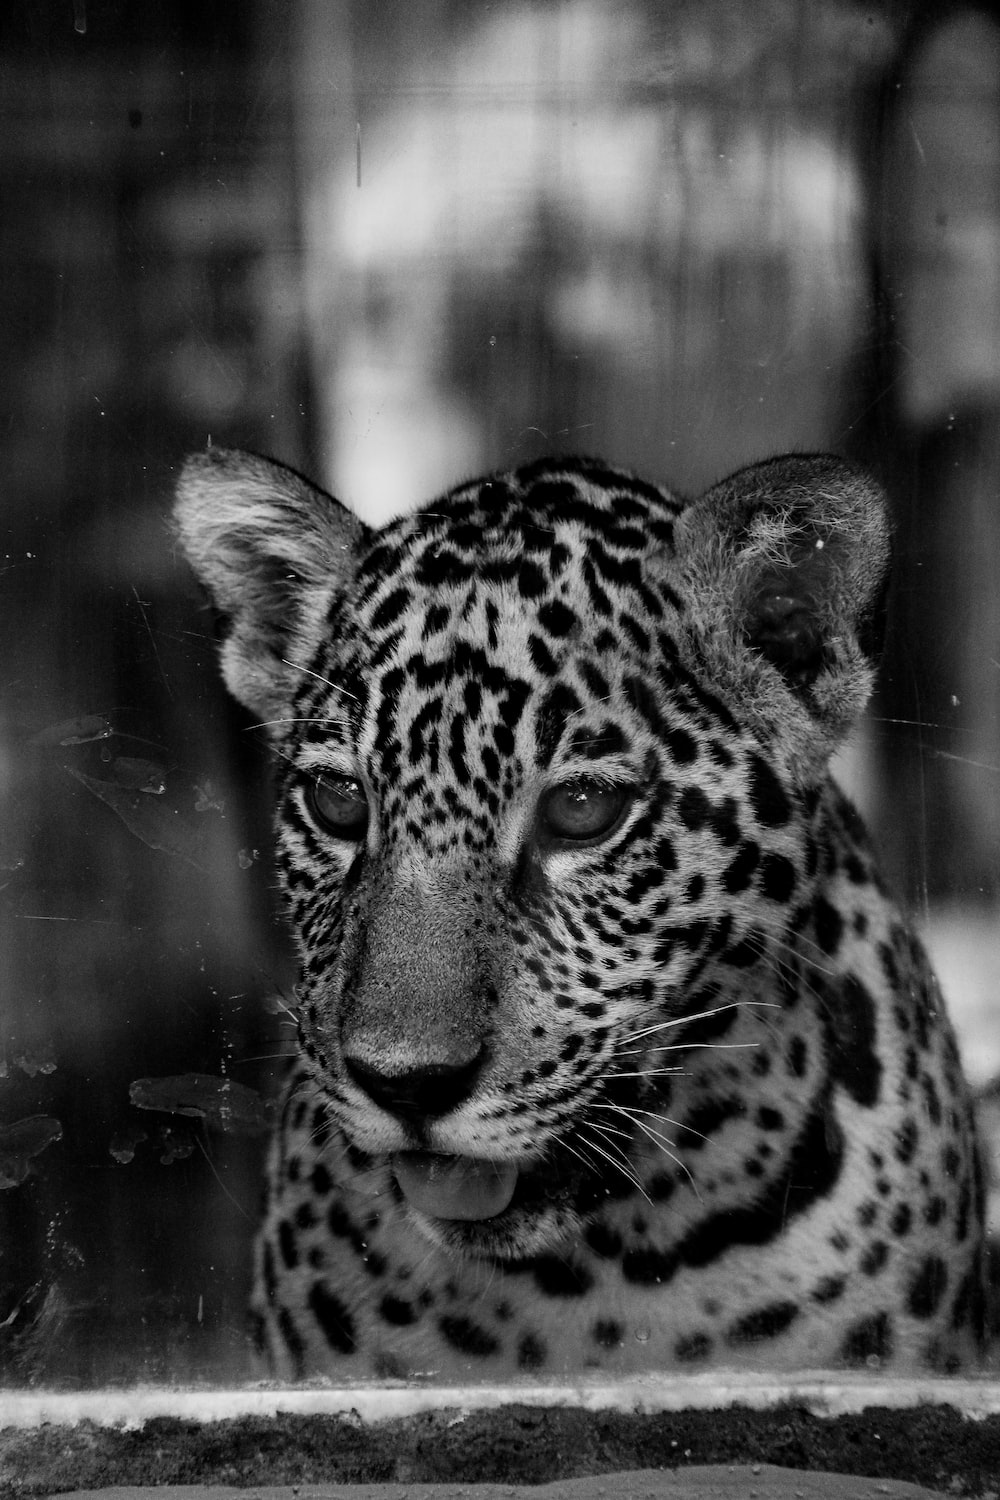 grayscale photo of cheetah in cage